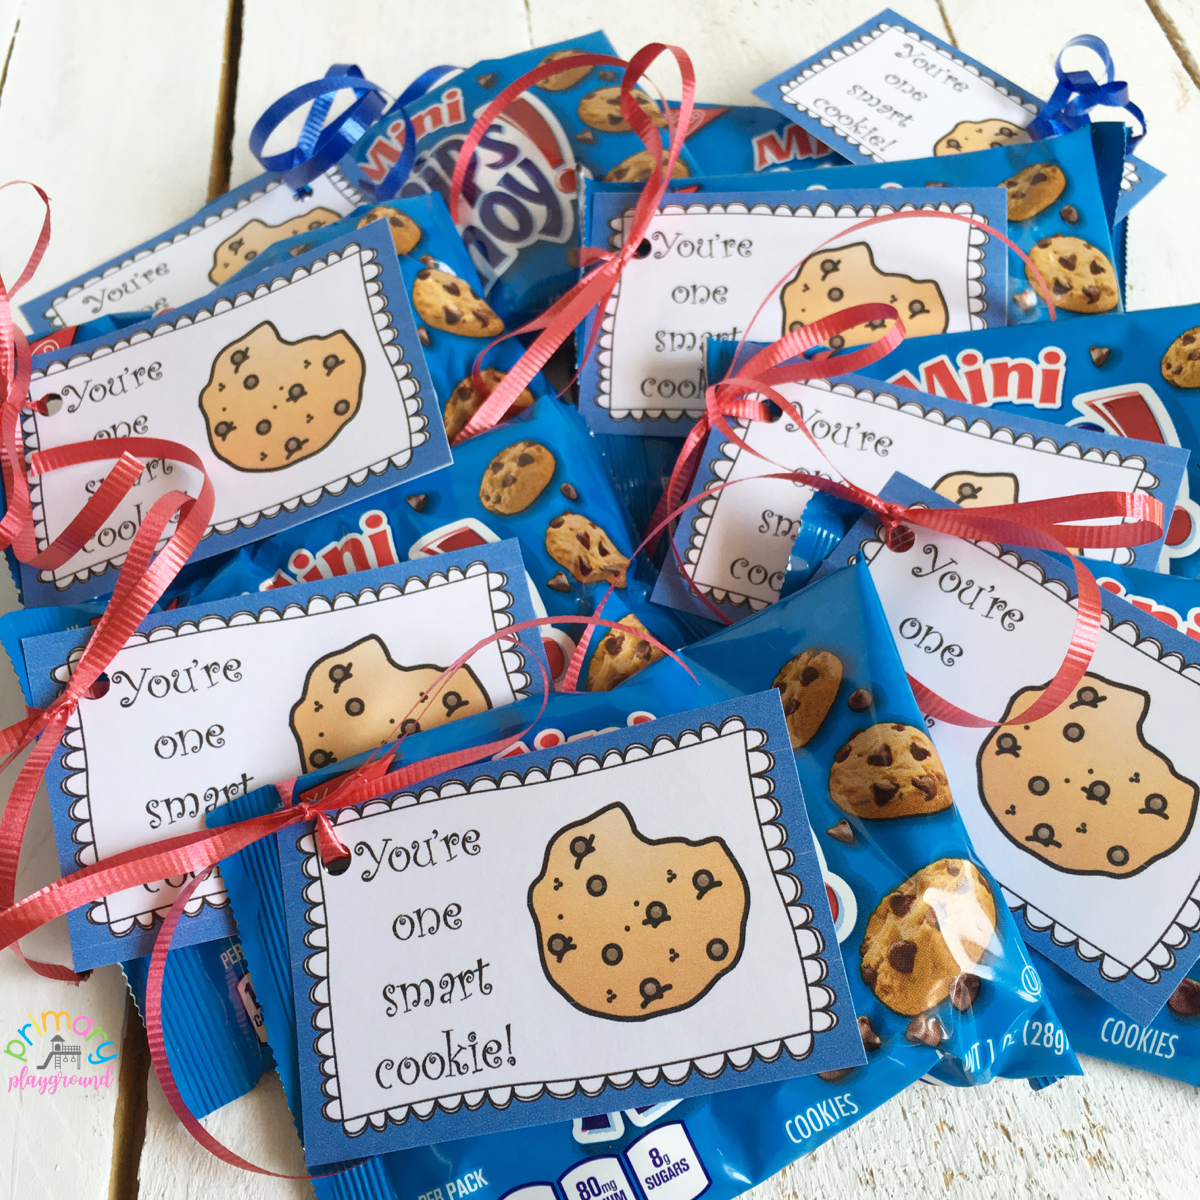 photograph regarding One Smart Cookie Printable named Youre One particular Clever Cookie! No cost Printable Tag - Basic Playground